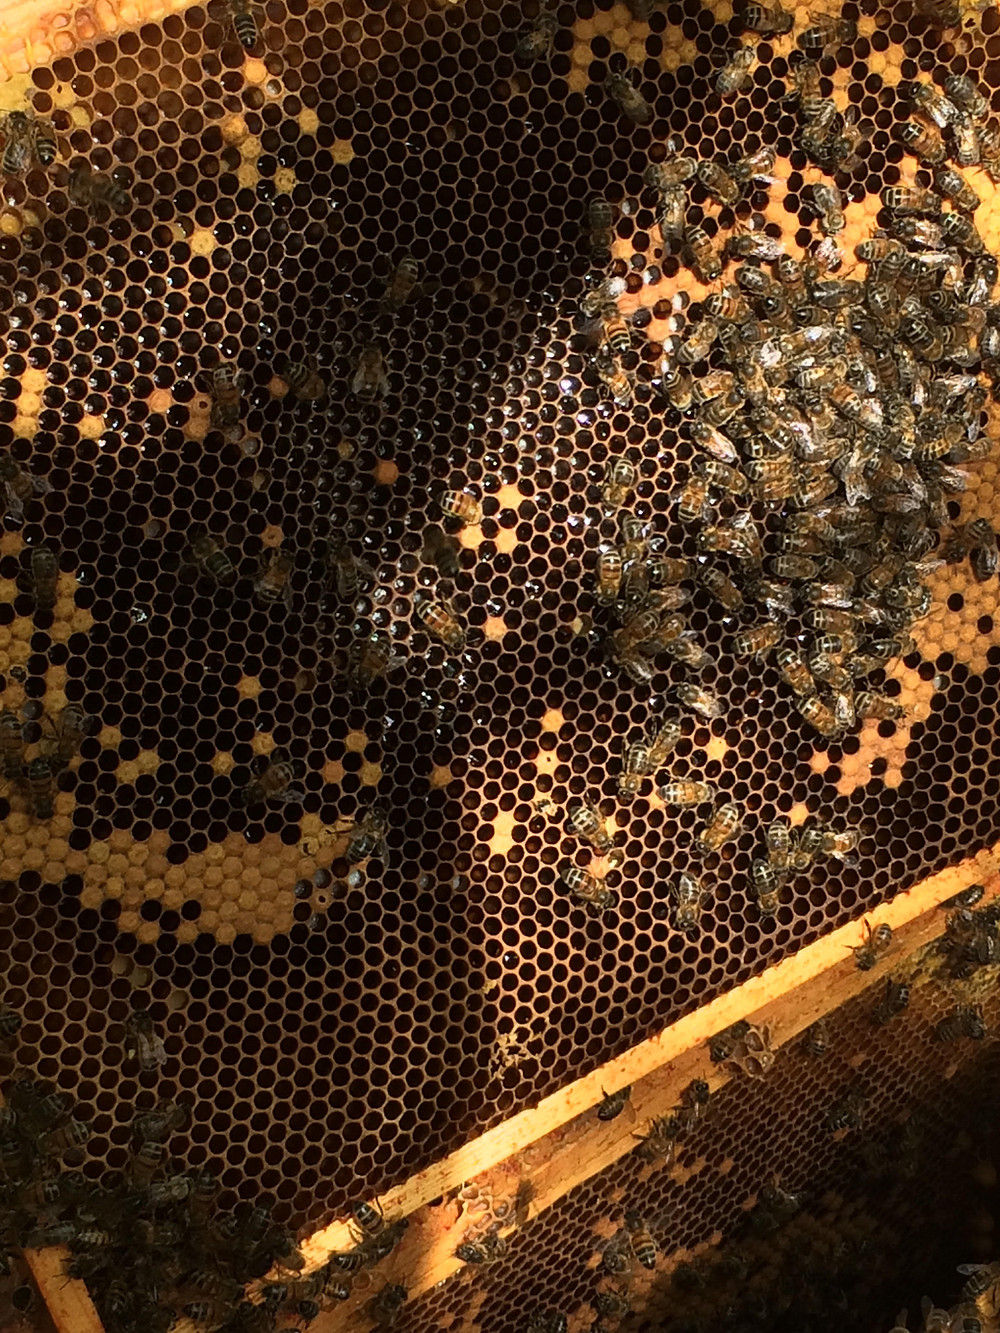 A frame inside the Bee hive